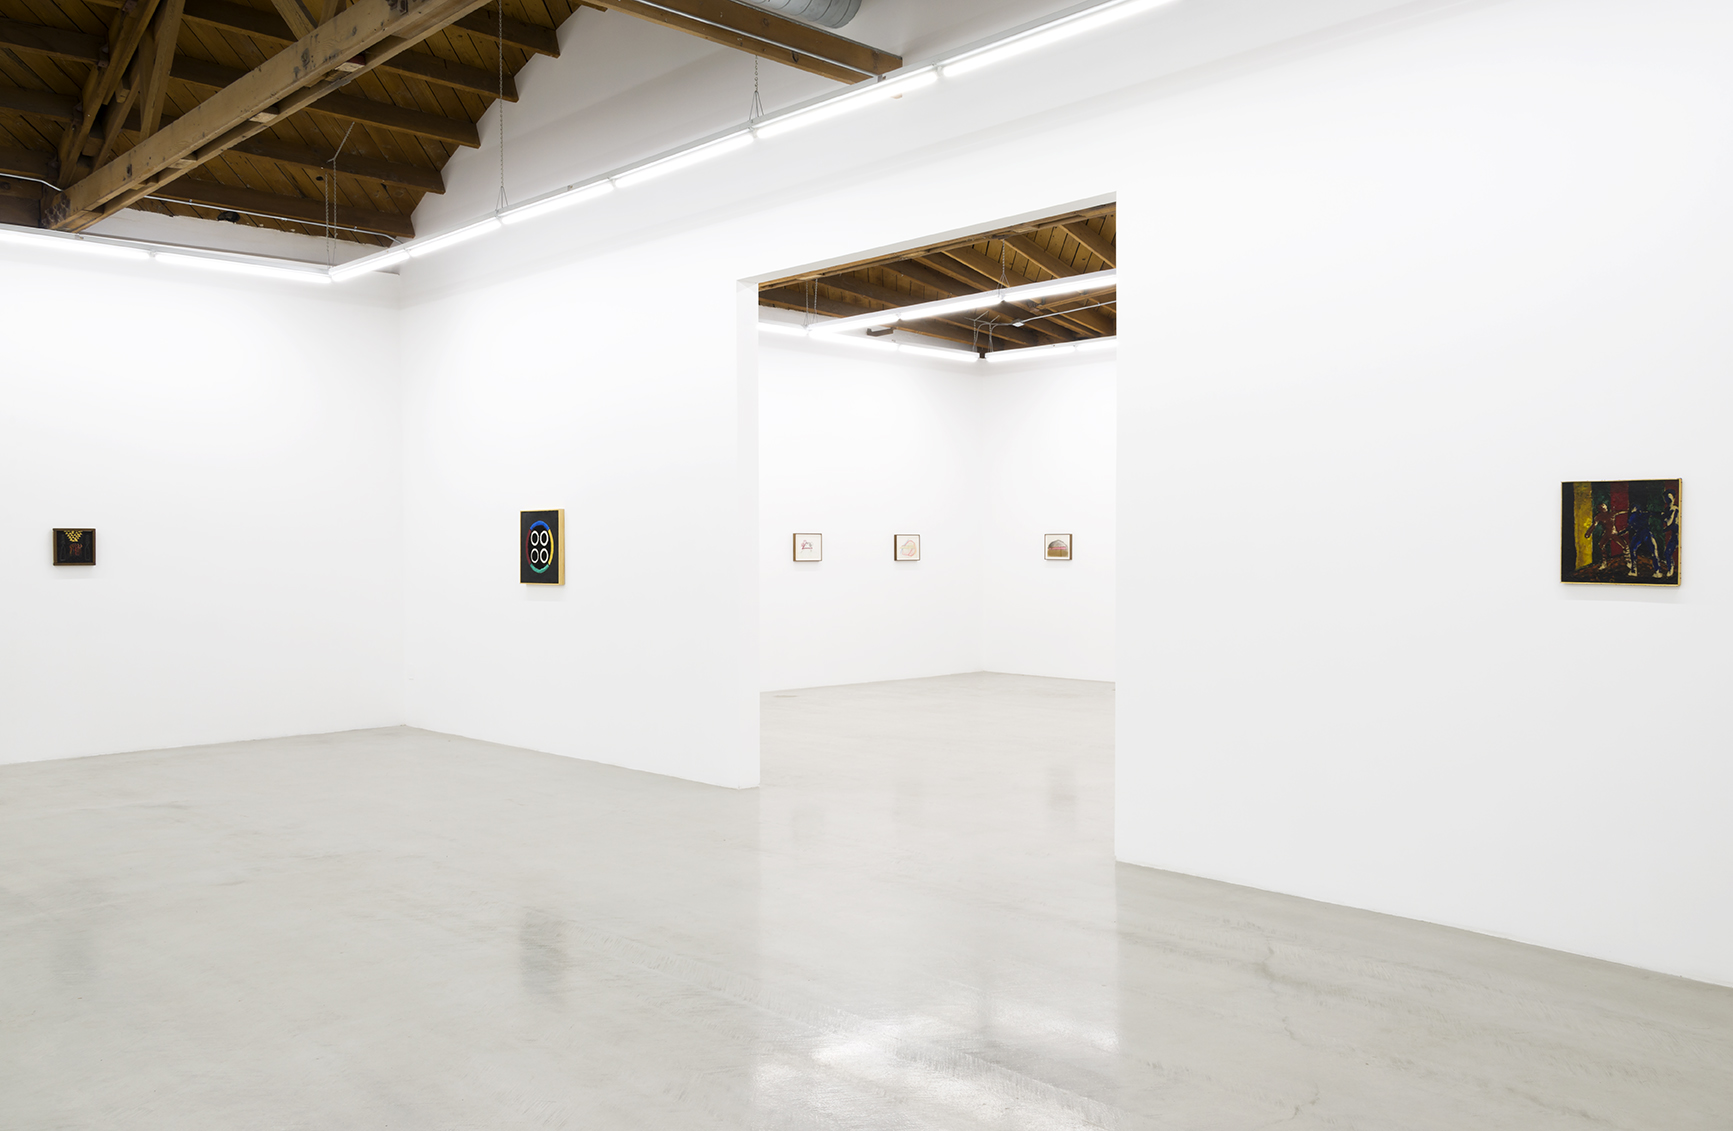 Installation view of Forrest Bess works painted from the artist's visions as well as Joan Snyder's works on paper